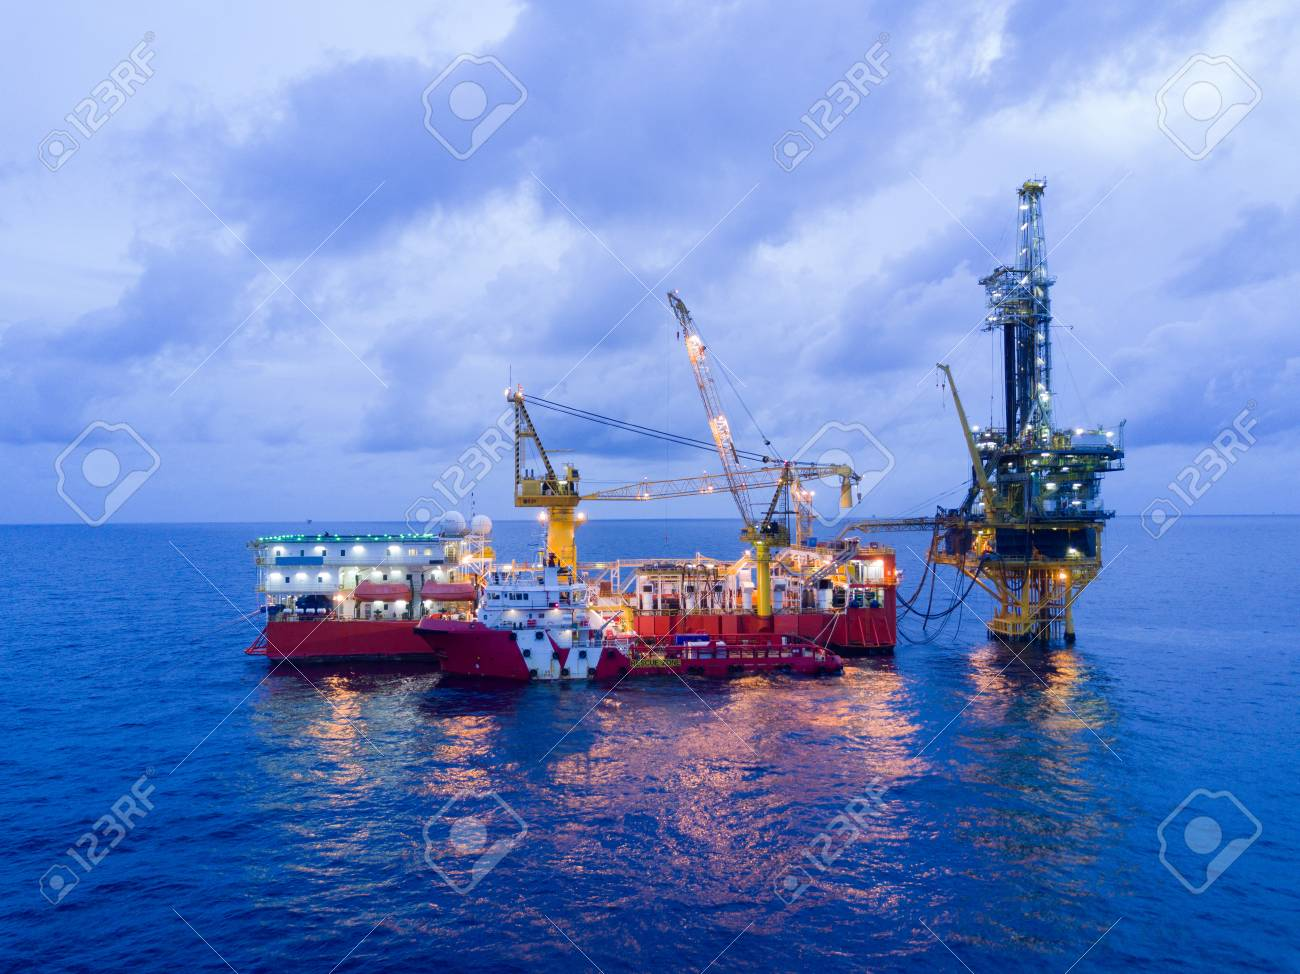 Aerial View of Tender Drilling Oil Rig (Barge Oil Rig) in The